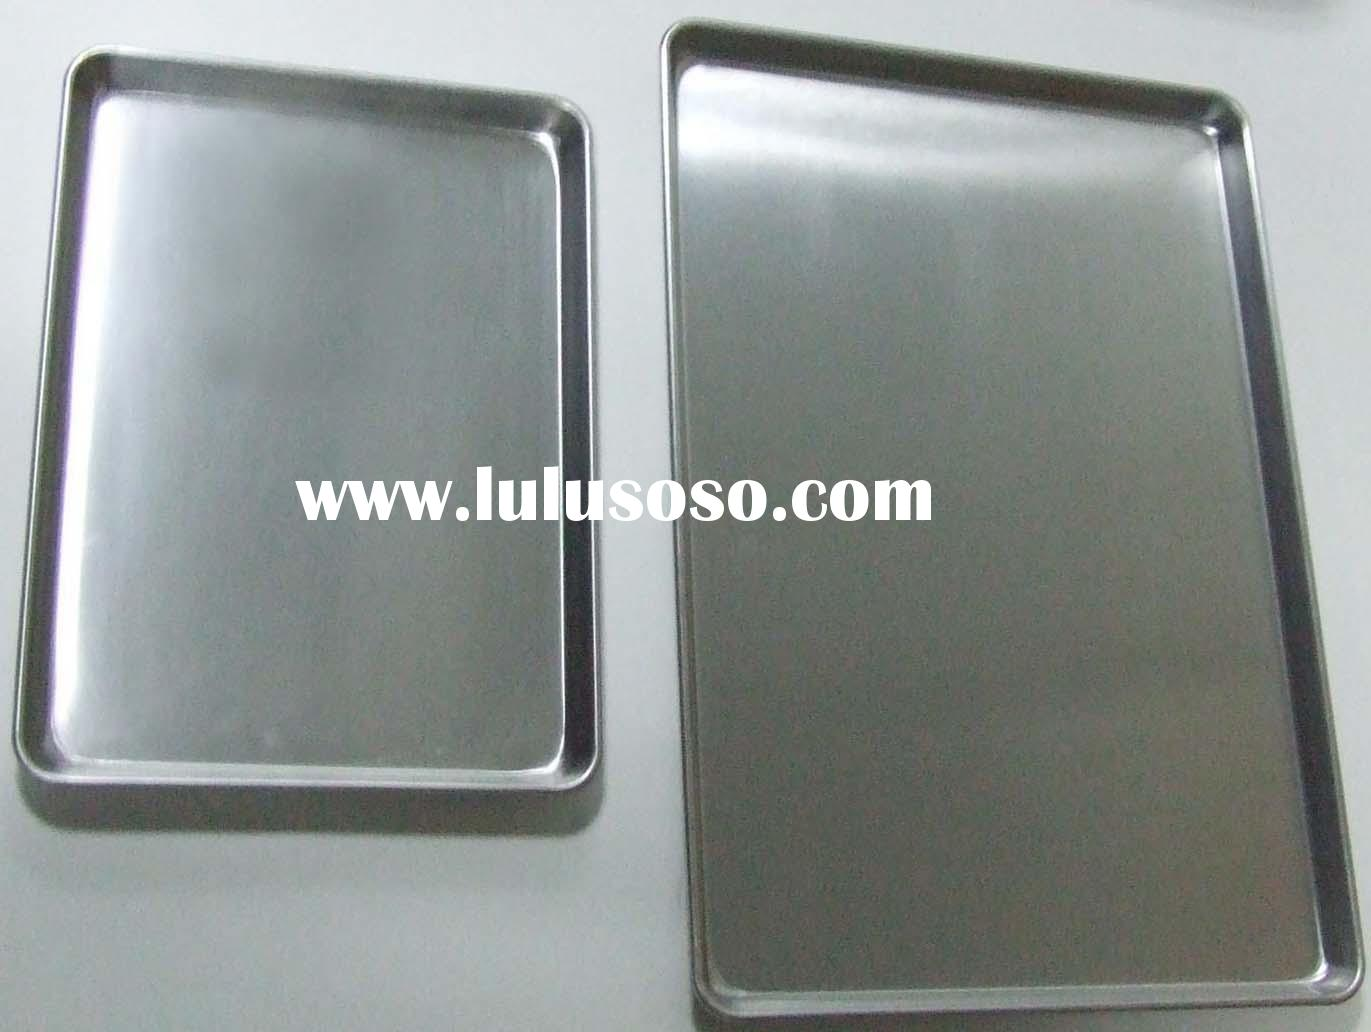 Food foil tray food foil tray manufacturers in lulusoso for Cuisine aluminium